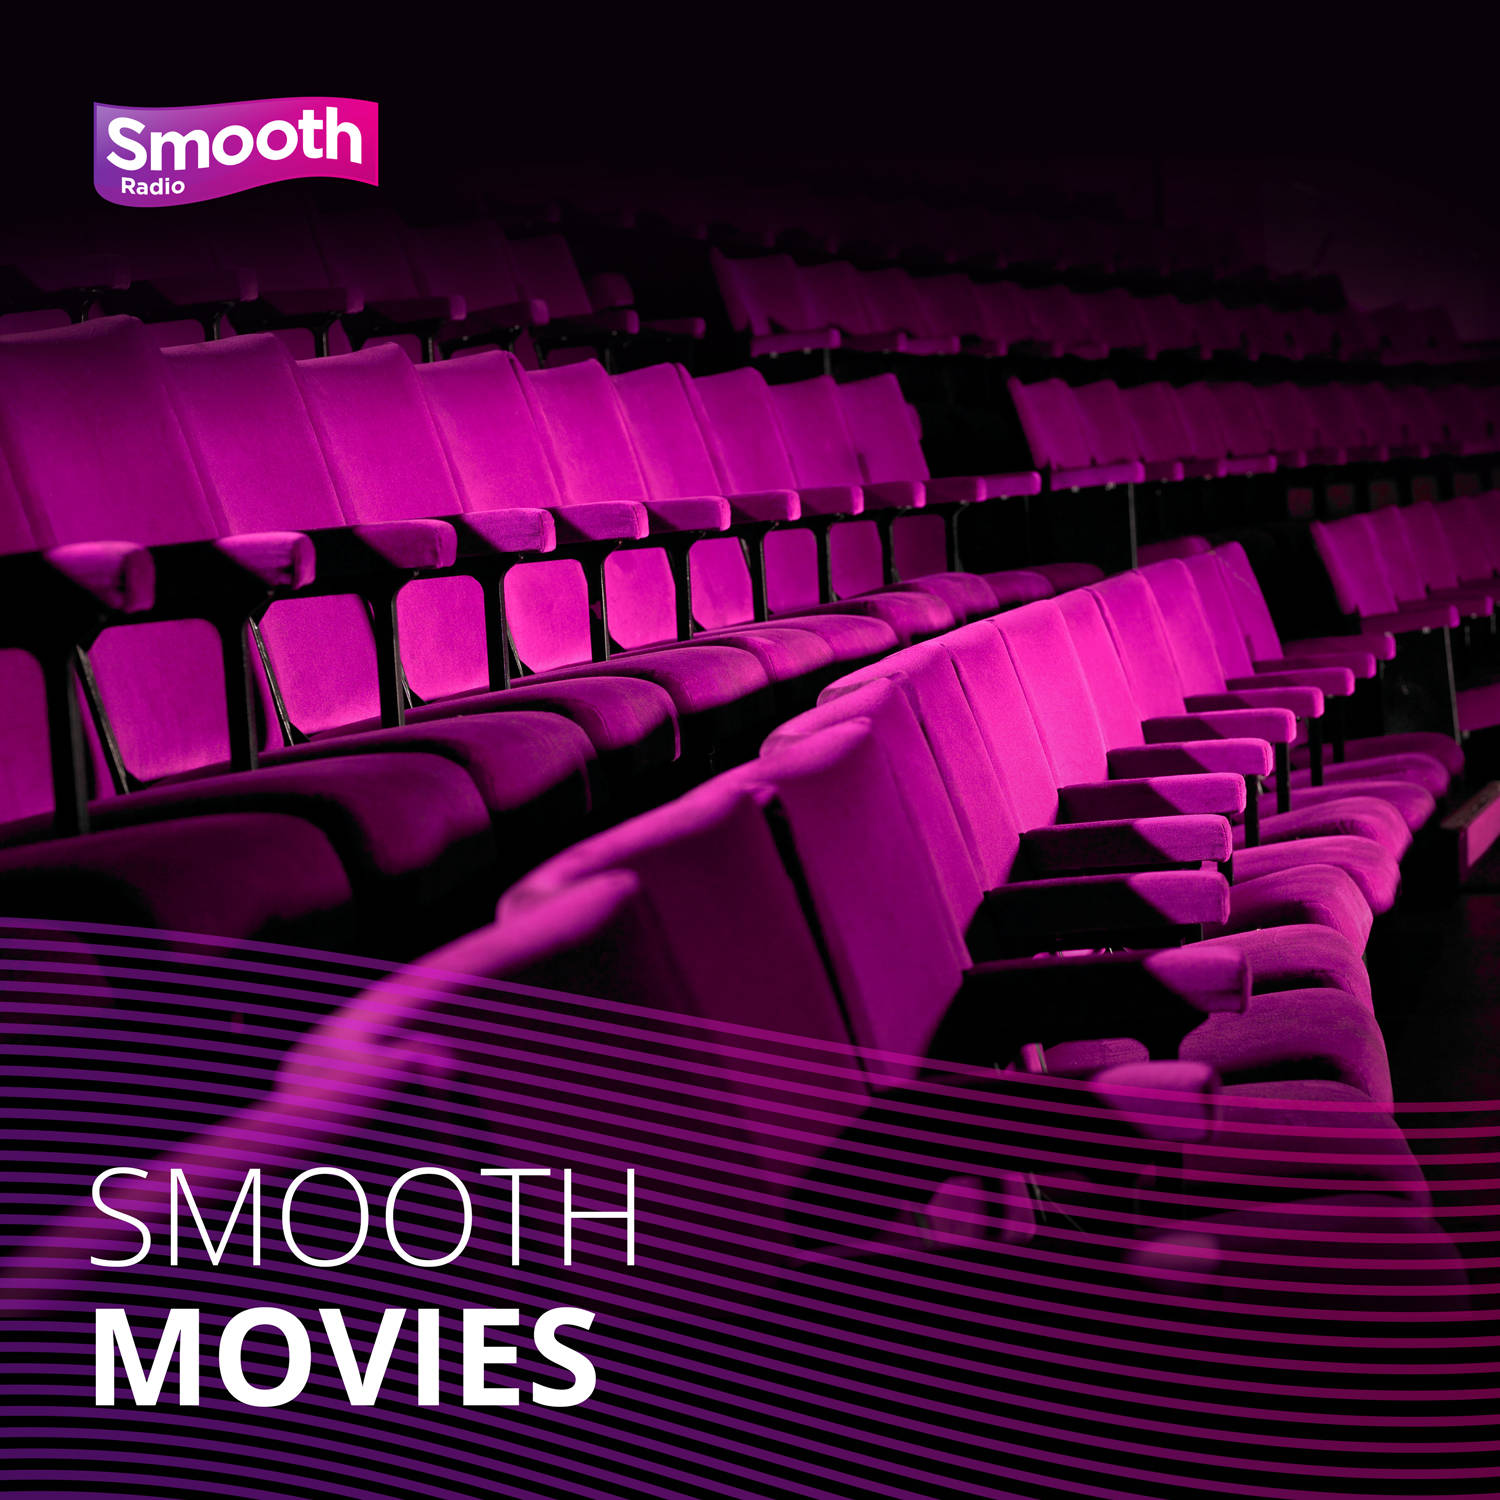 Smooth Movies image